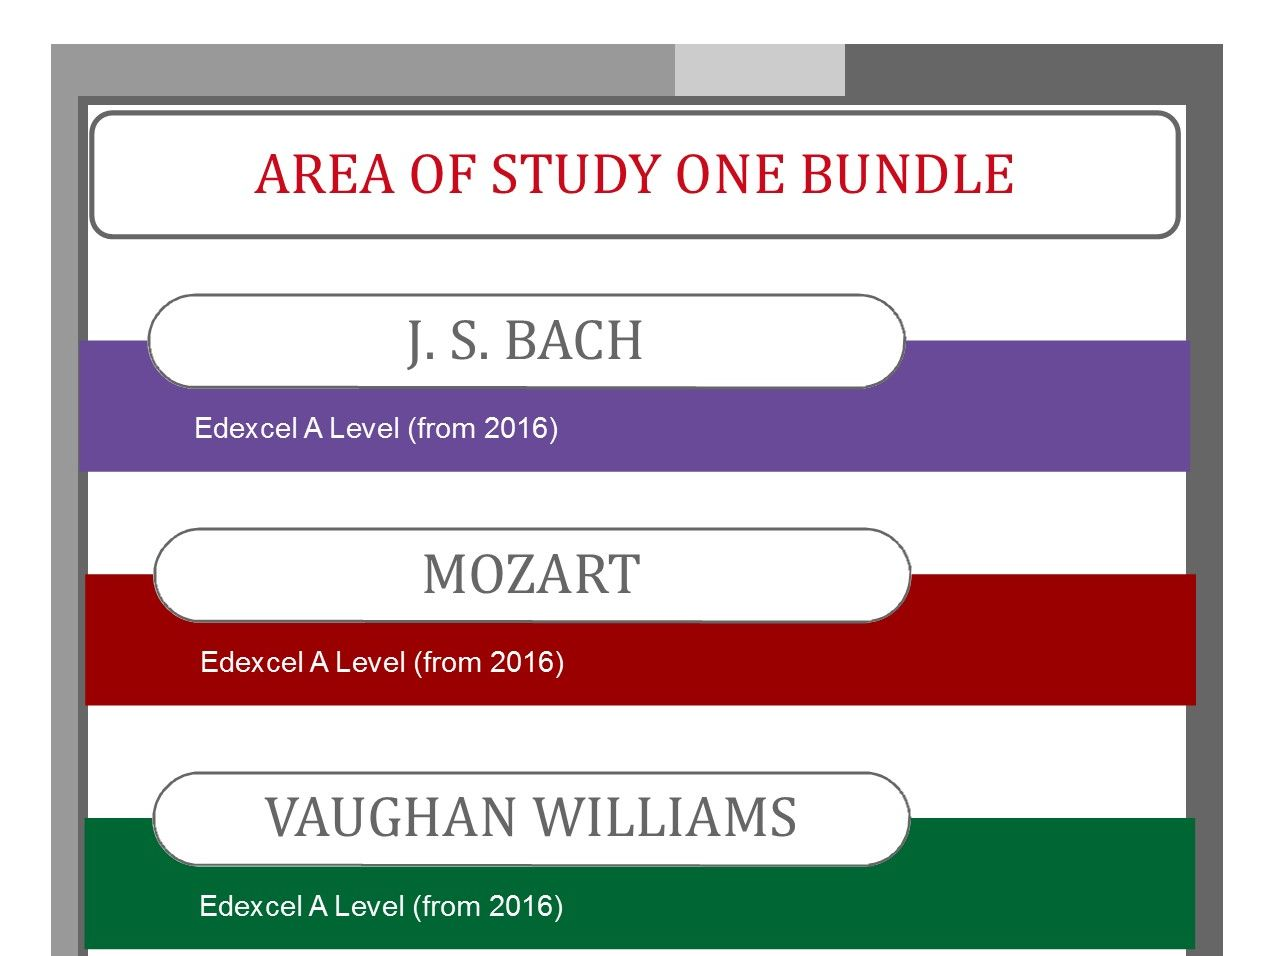 Area of Study One: Vocal Music Bundle for Edexcel Music A level (from 2016)